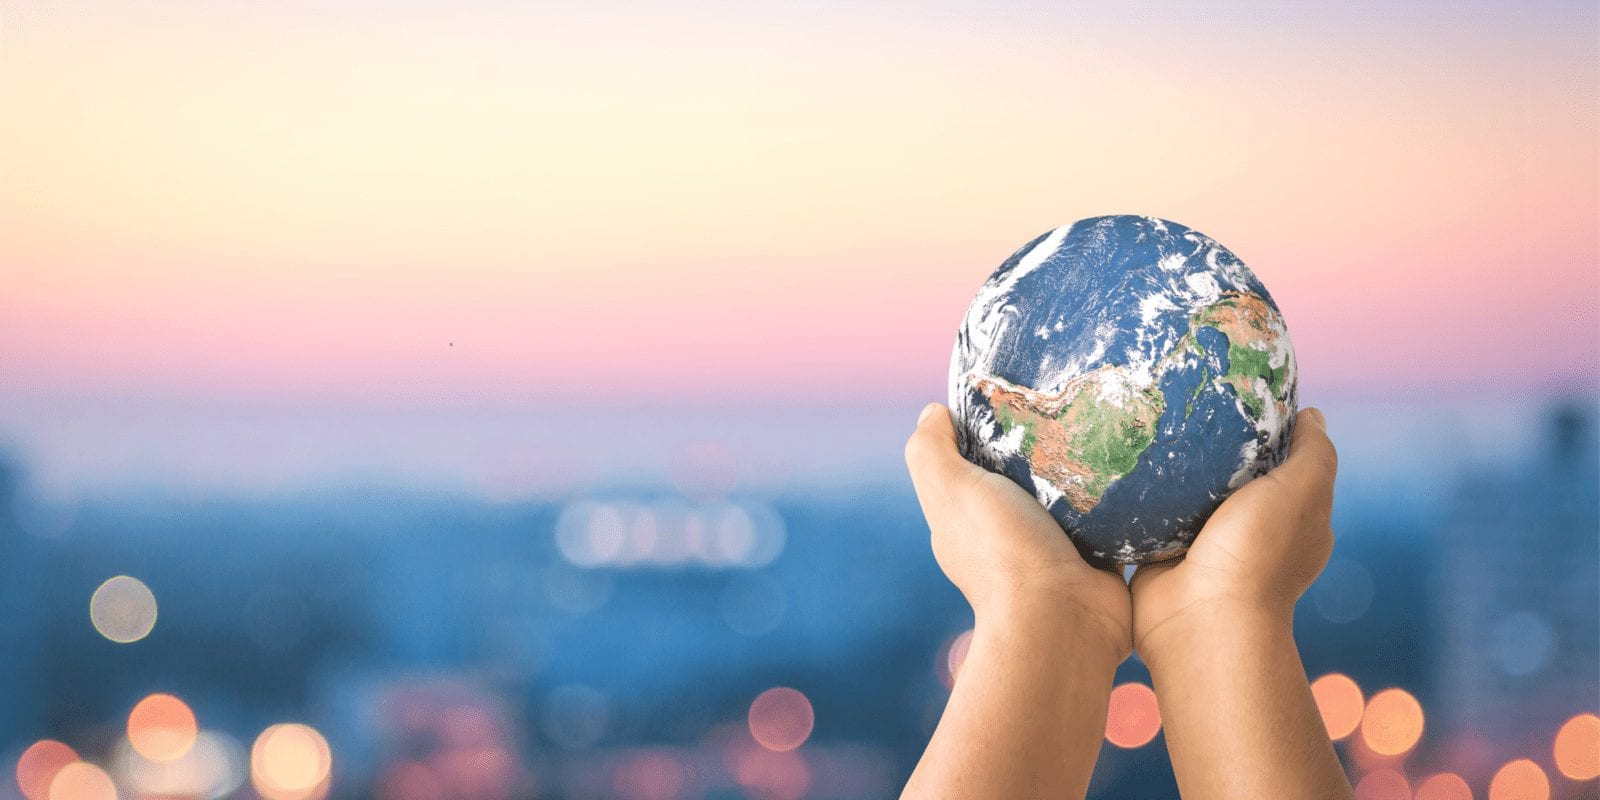 Hands holding a planet